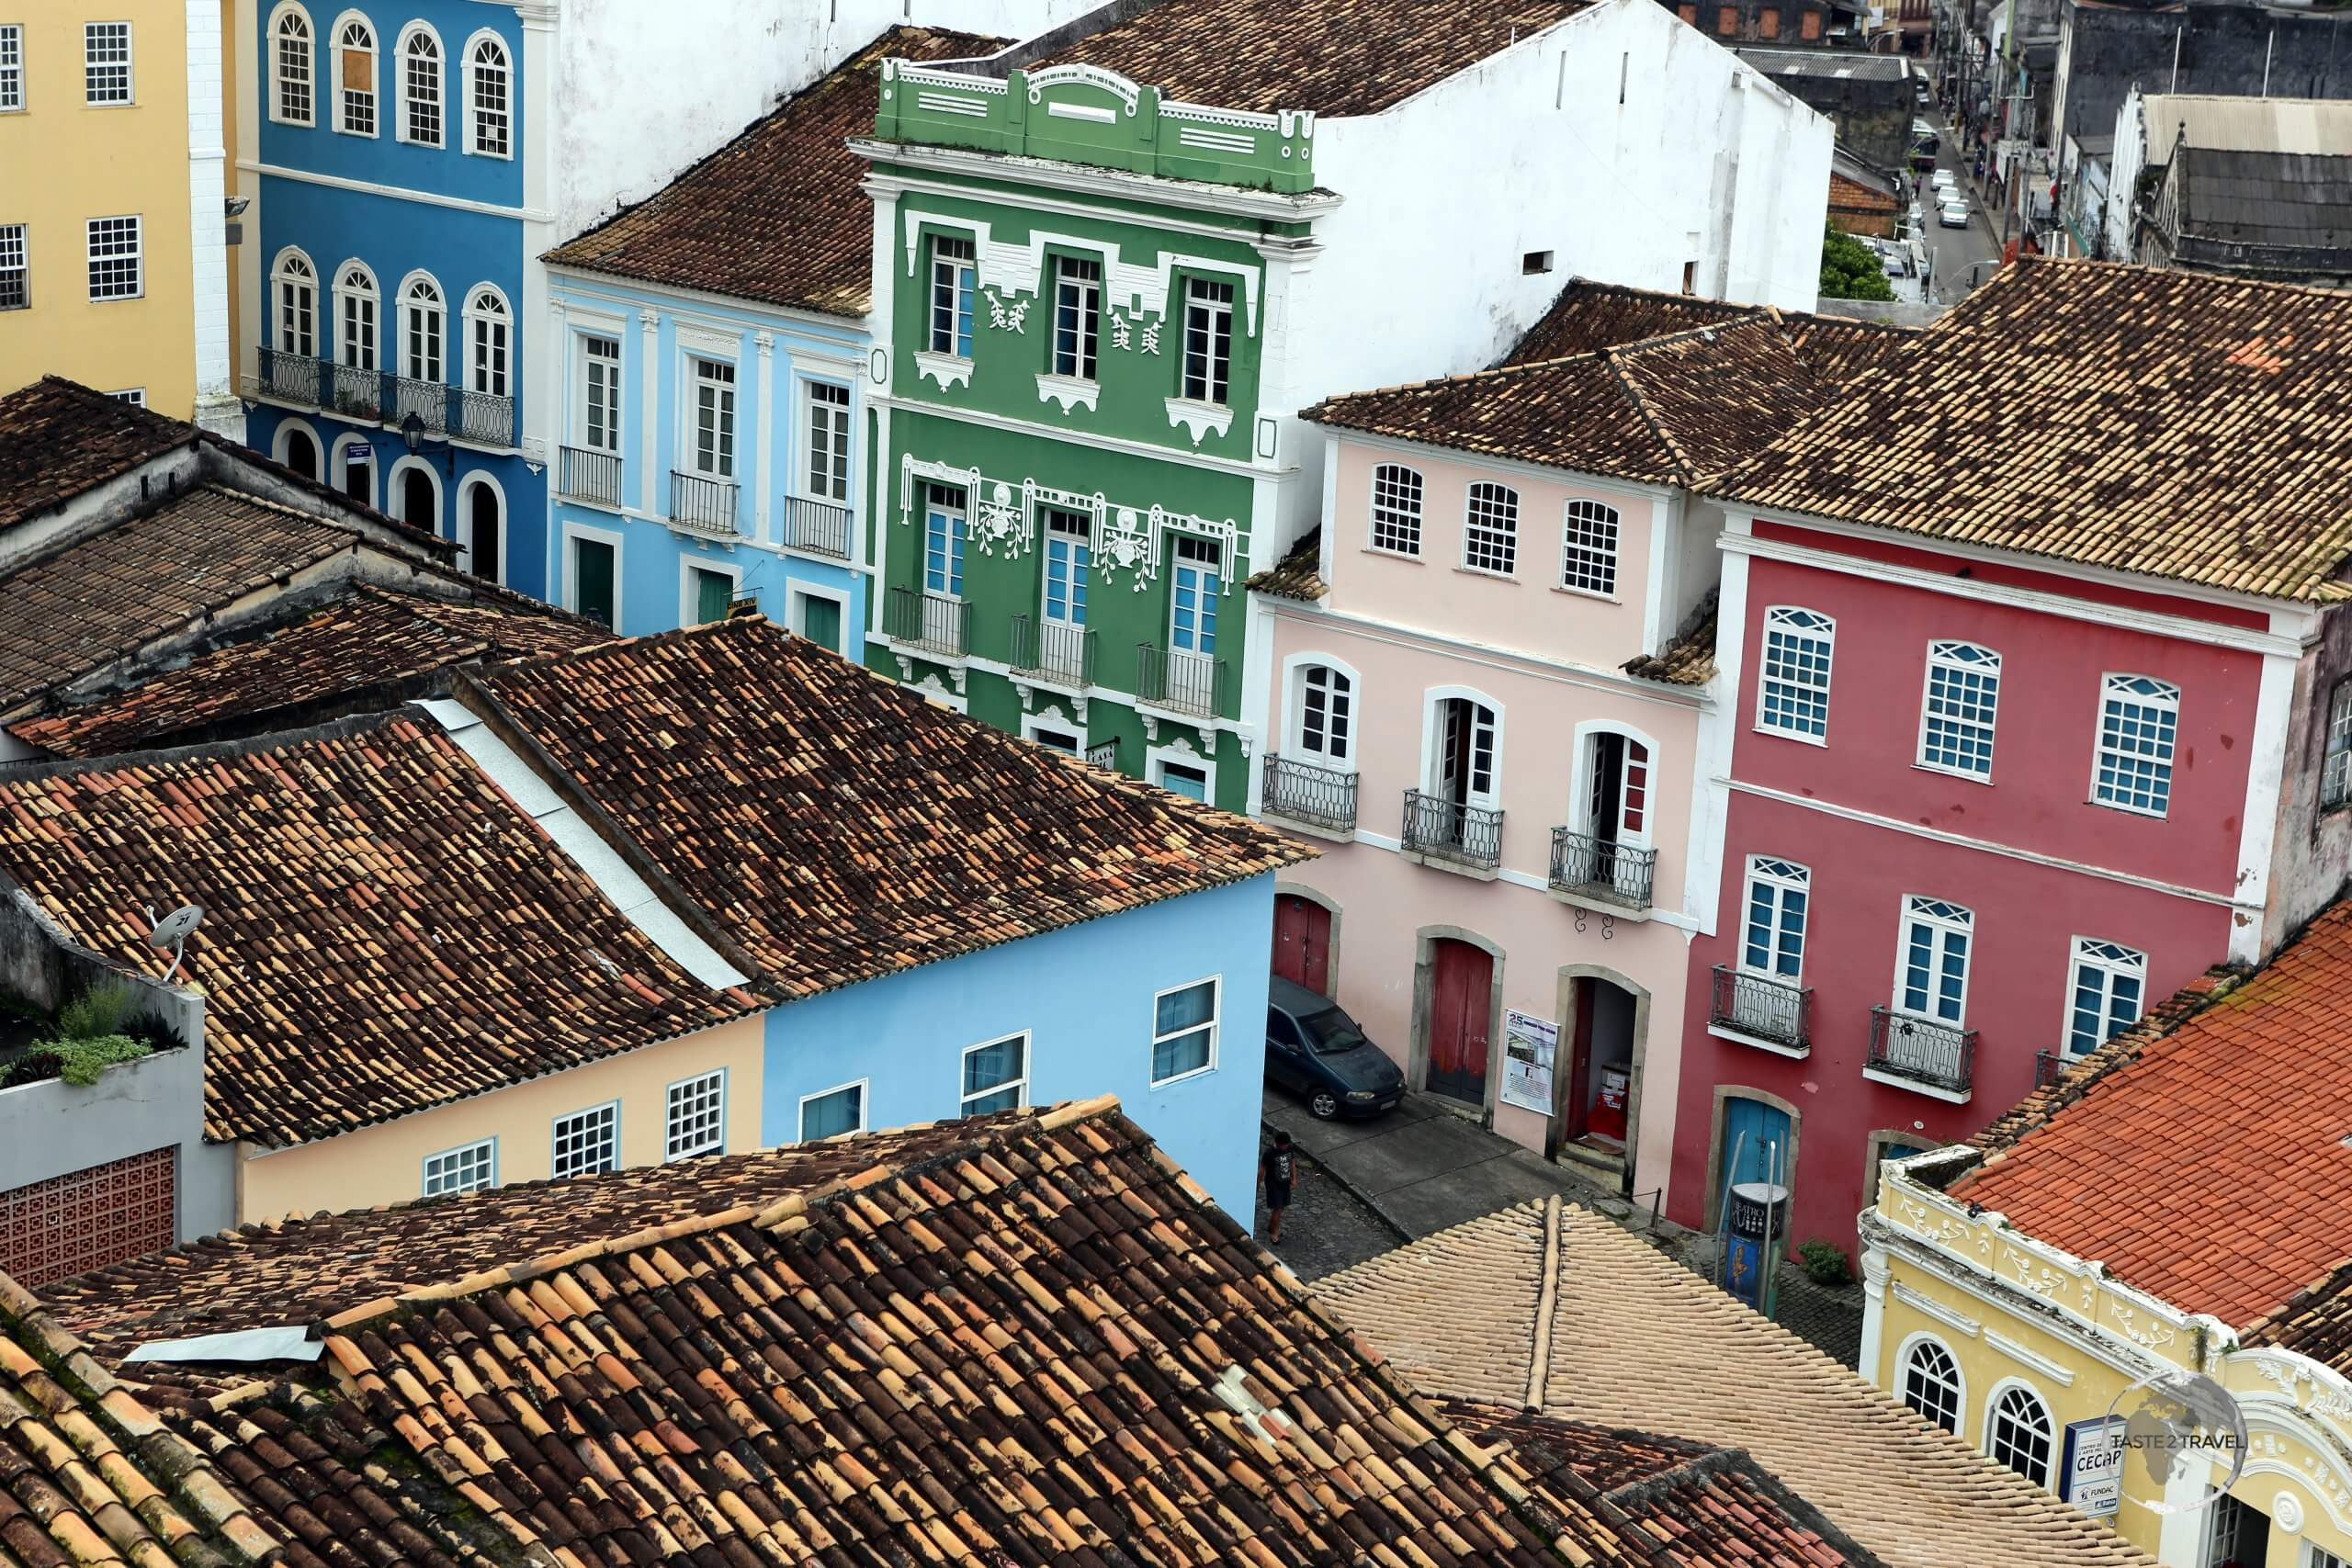 Founded by the Portuguese in 1549, the city of Salvador is the capital of the Brazilian state of Bahia and is an important centre for Afro-Brazilian culture.